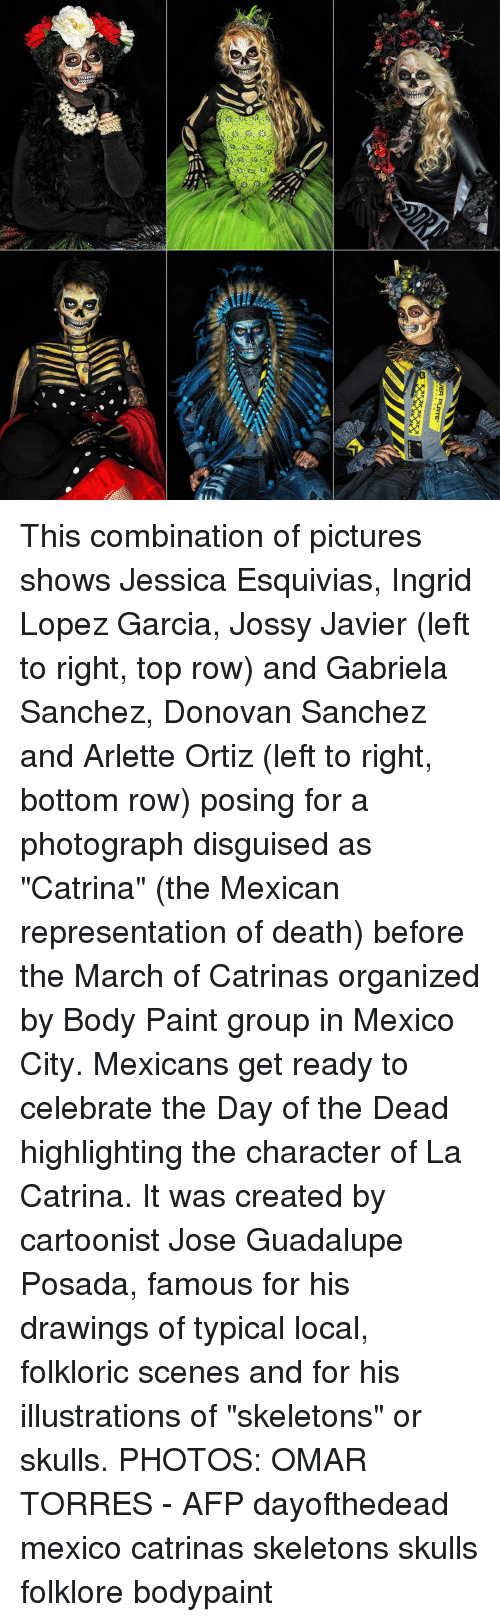 "Memes, Death, and Drawings: This combination of pictures shows Jessica Esquivias, Ingrid Lopez Garcia, Jossy Javier (left to right, top row) and Gabriela Sanchez, Donovan Sanchez and Arlette Ortiz (left to right, bottom row) posing for a photograph disguised as ""Catrina"" (the Mexican representation of death) before the March of Catrinas organized by Body Paint group in Mexico City. Mexicans get ready to celebrate the Day of the Dead highlighting the character of La Catrina. It was created by cartoonist Jose Guadalupe Posada, famous for his drawings of typical local, folkloric scenes and for his illustrations of ""skeletons"" or skulls. PHOTOS: OMAR TORRES - AFP dayofthedead mexico catrinas skeletons skulls folklore bodypaint"